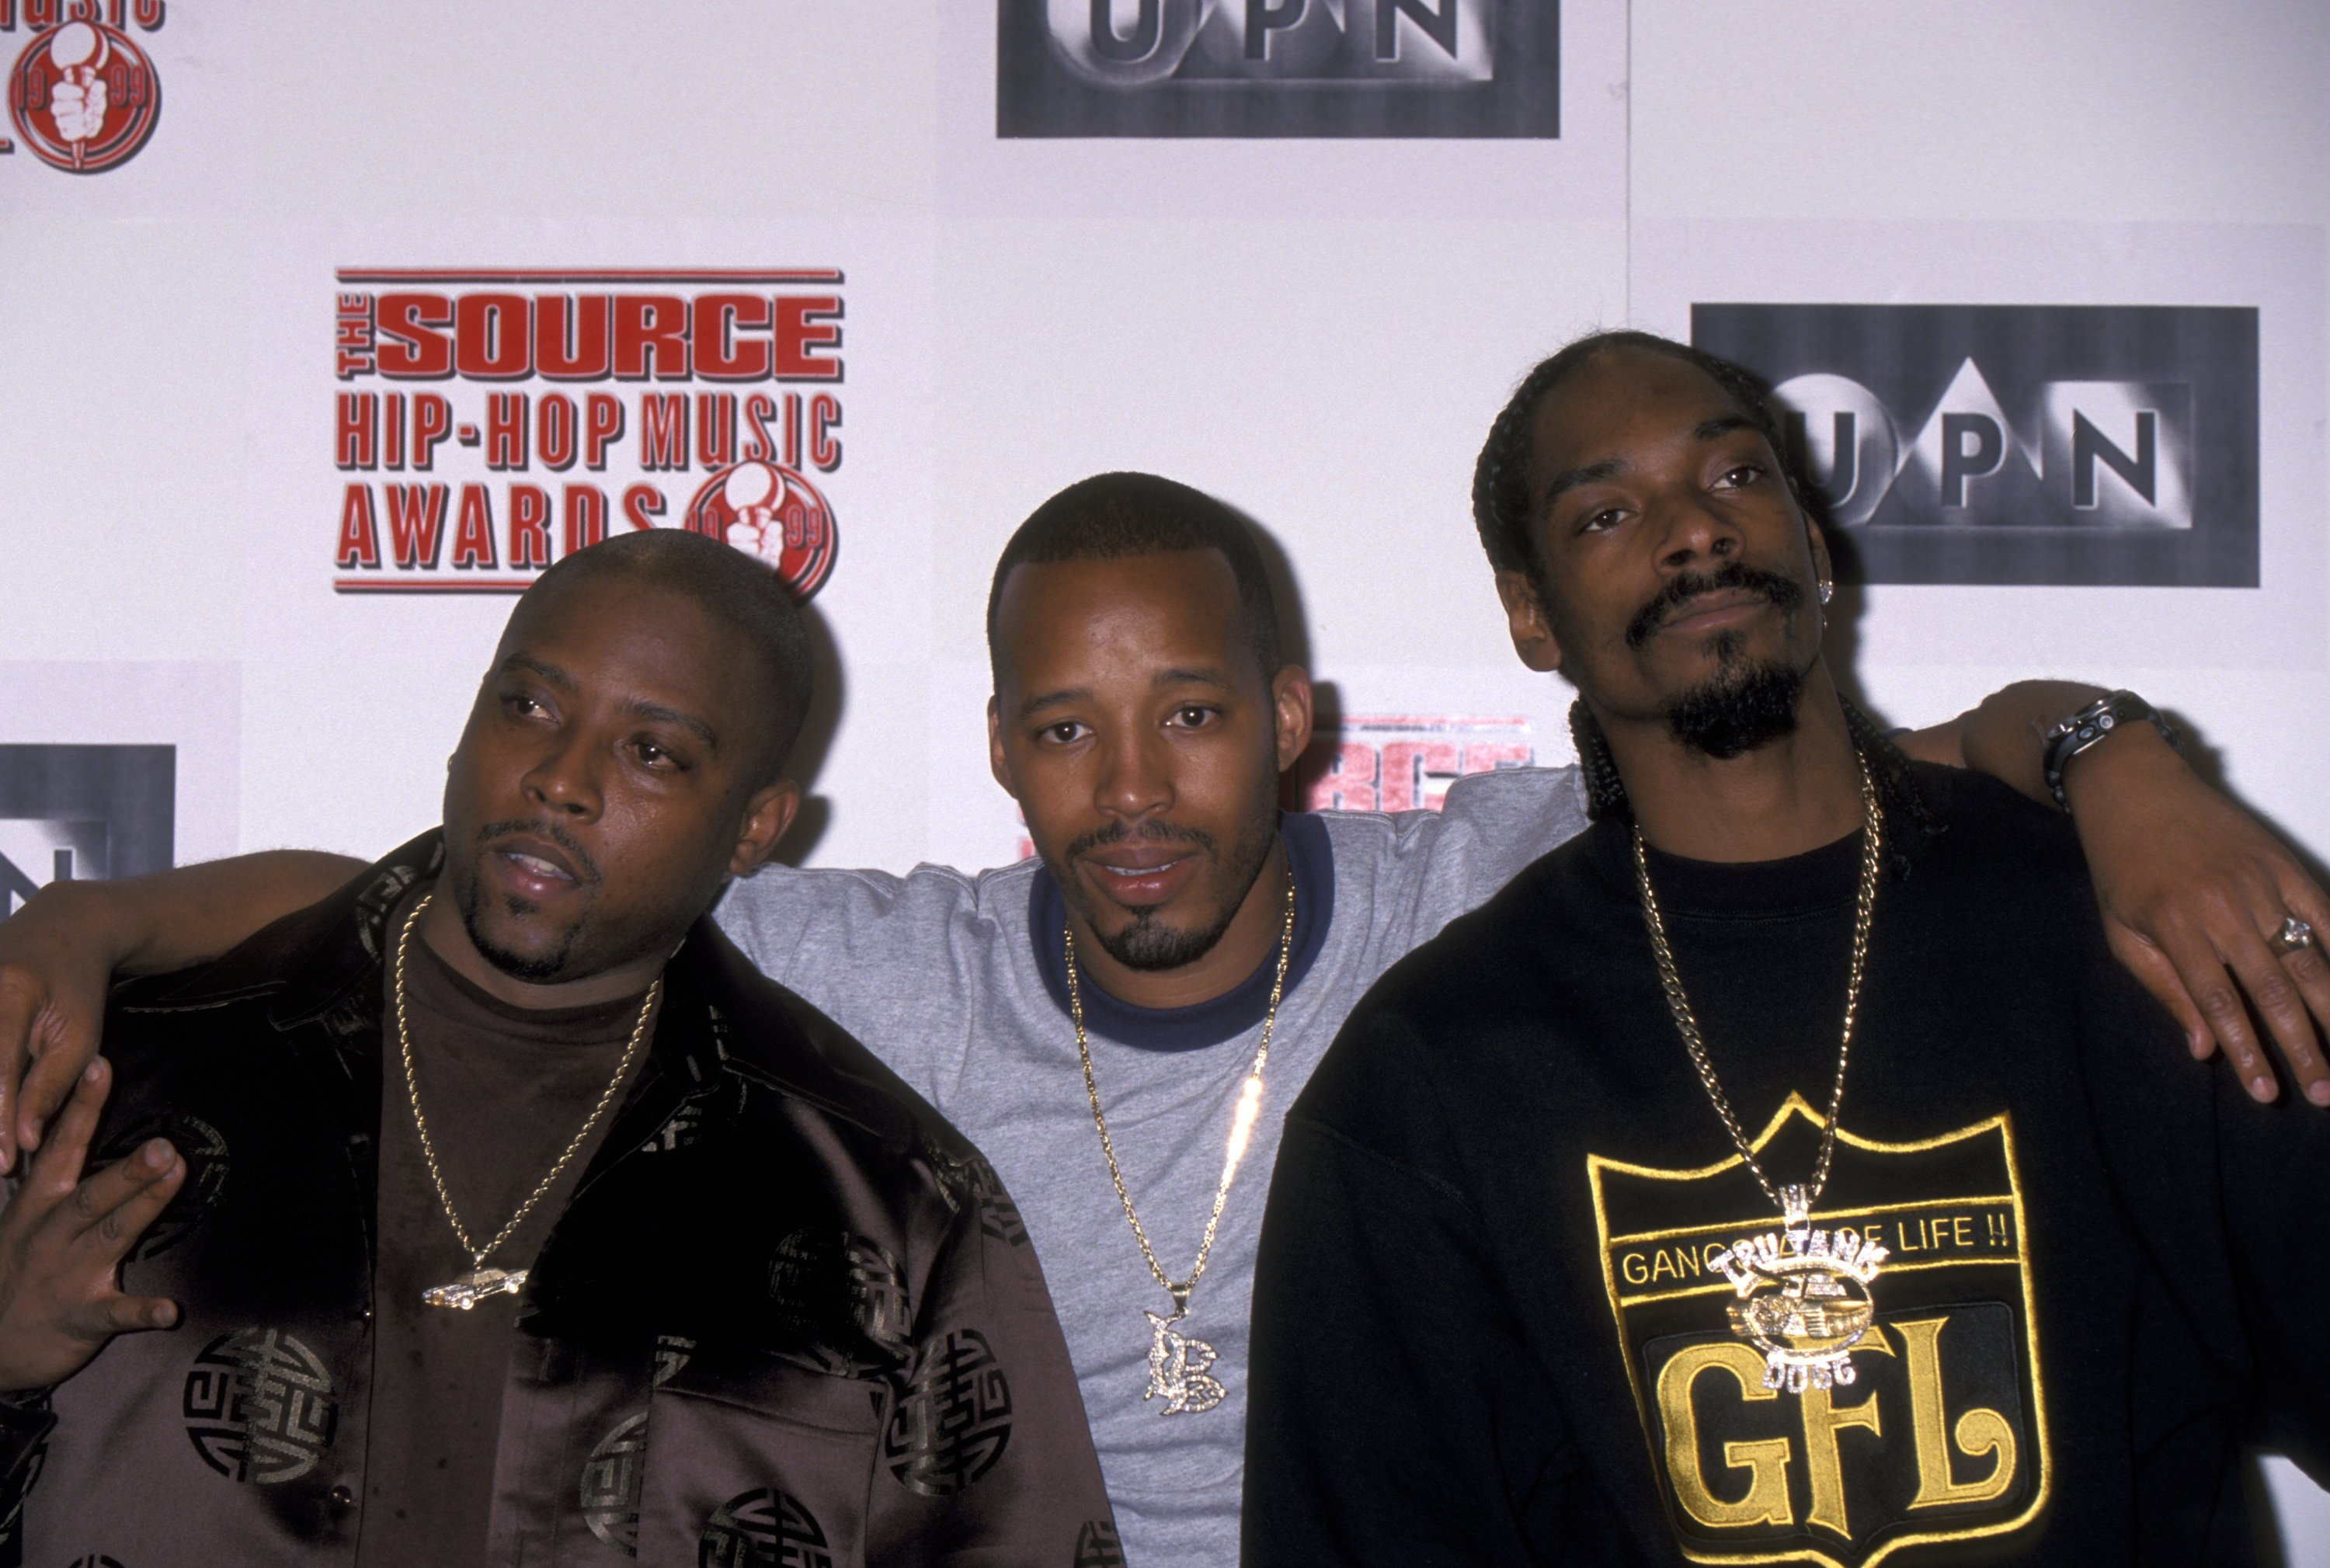 Nate Dogg, Warren G and Snoop Dogg attend Source Hip-Hop Music Awards on August 18, 1999 at the Pantages Theater | Photo: Getty Images